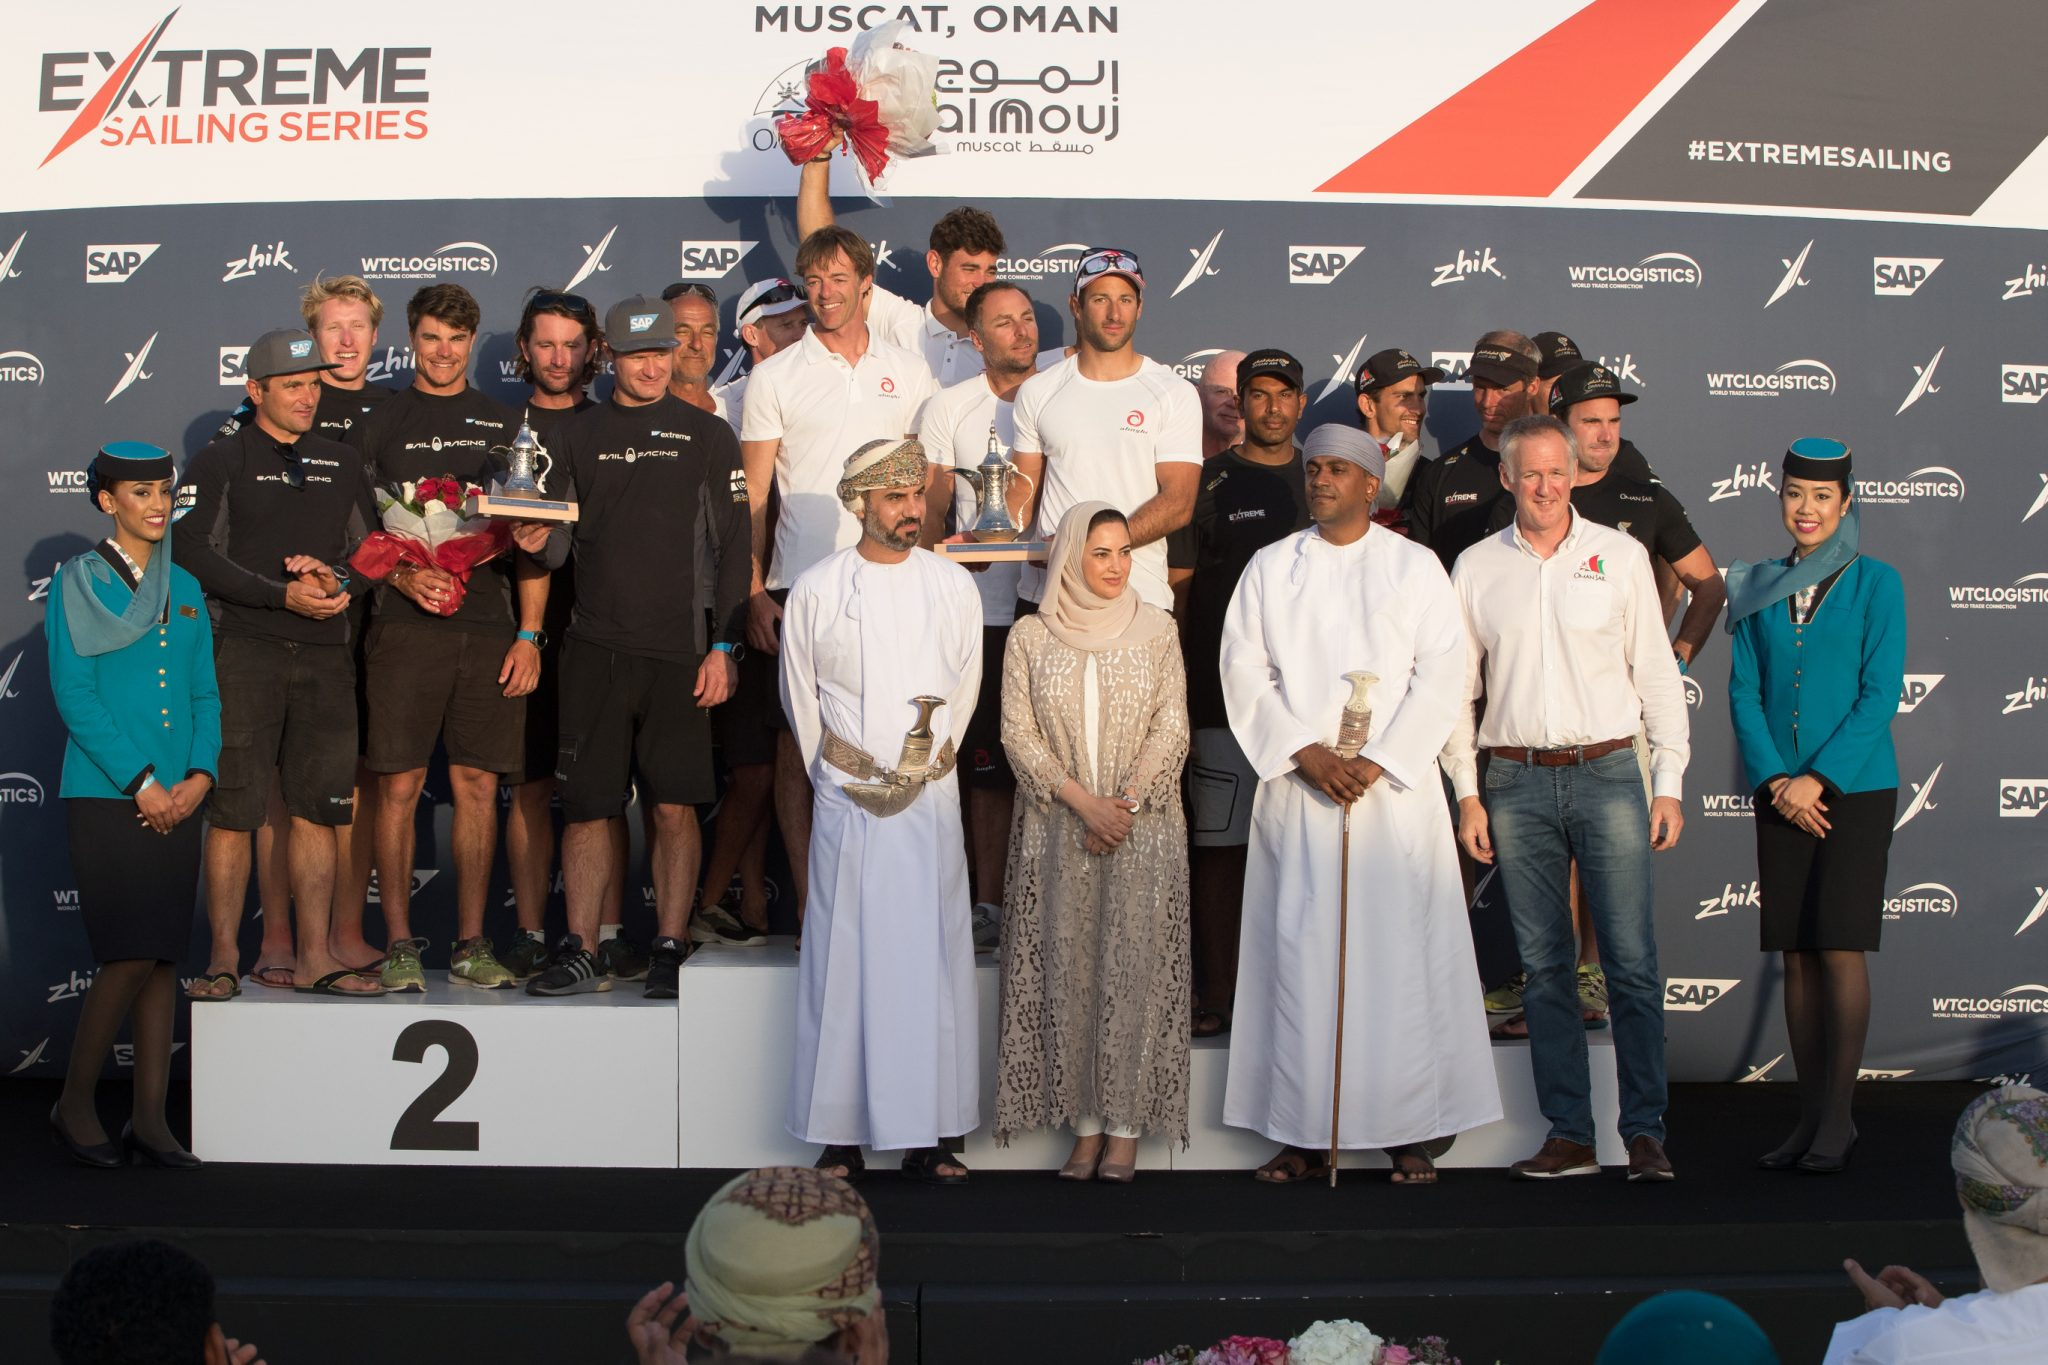 Team Oman Air secure a podium place as Extreme Sailing Series concludes in Muscat